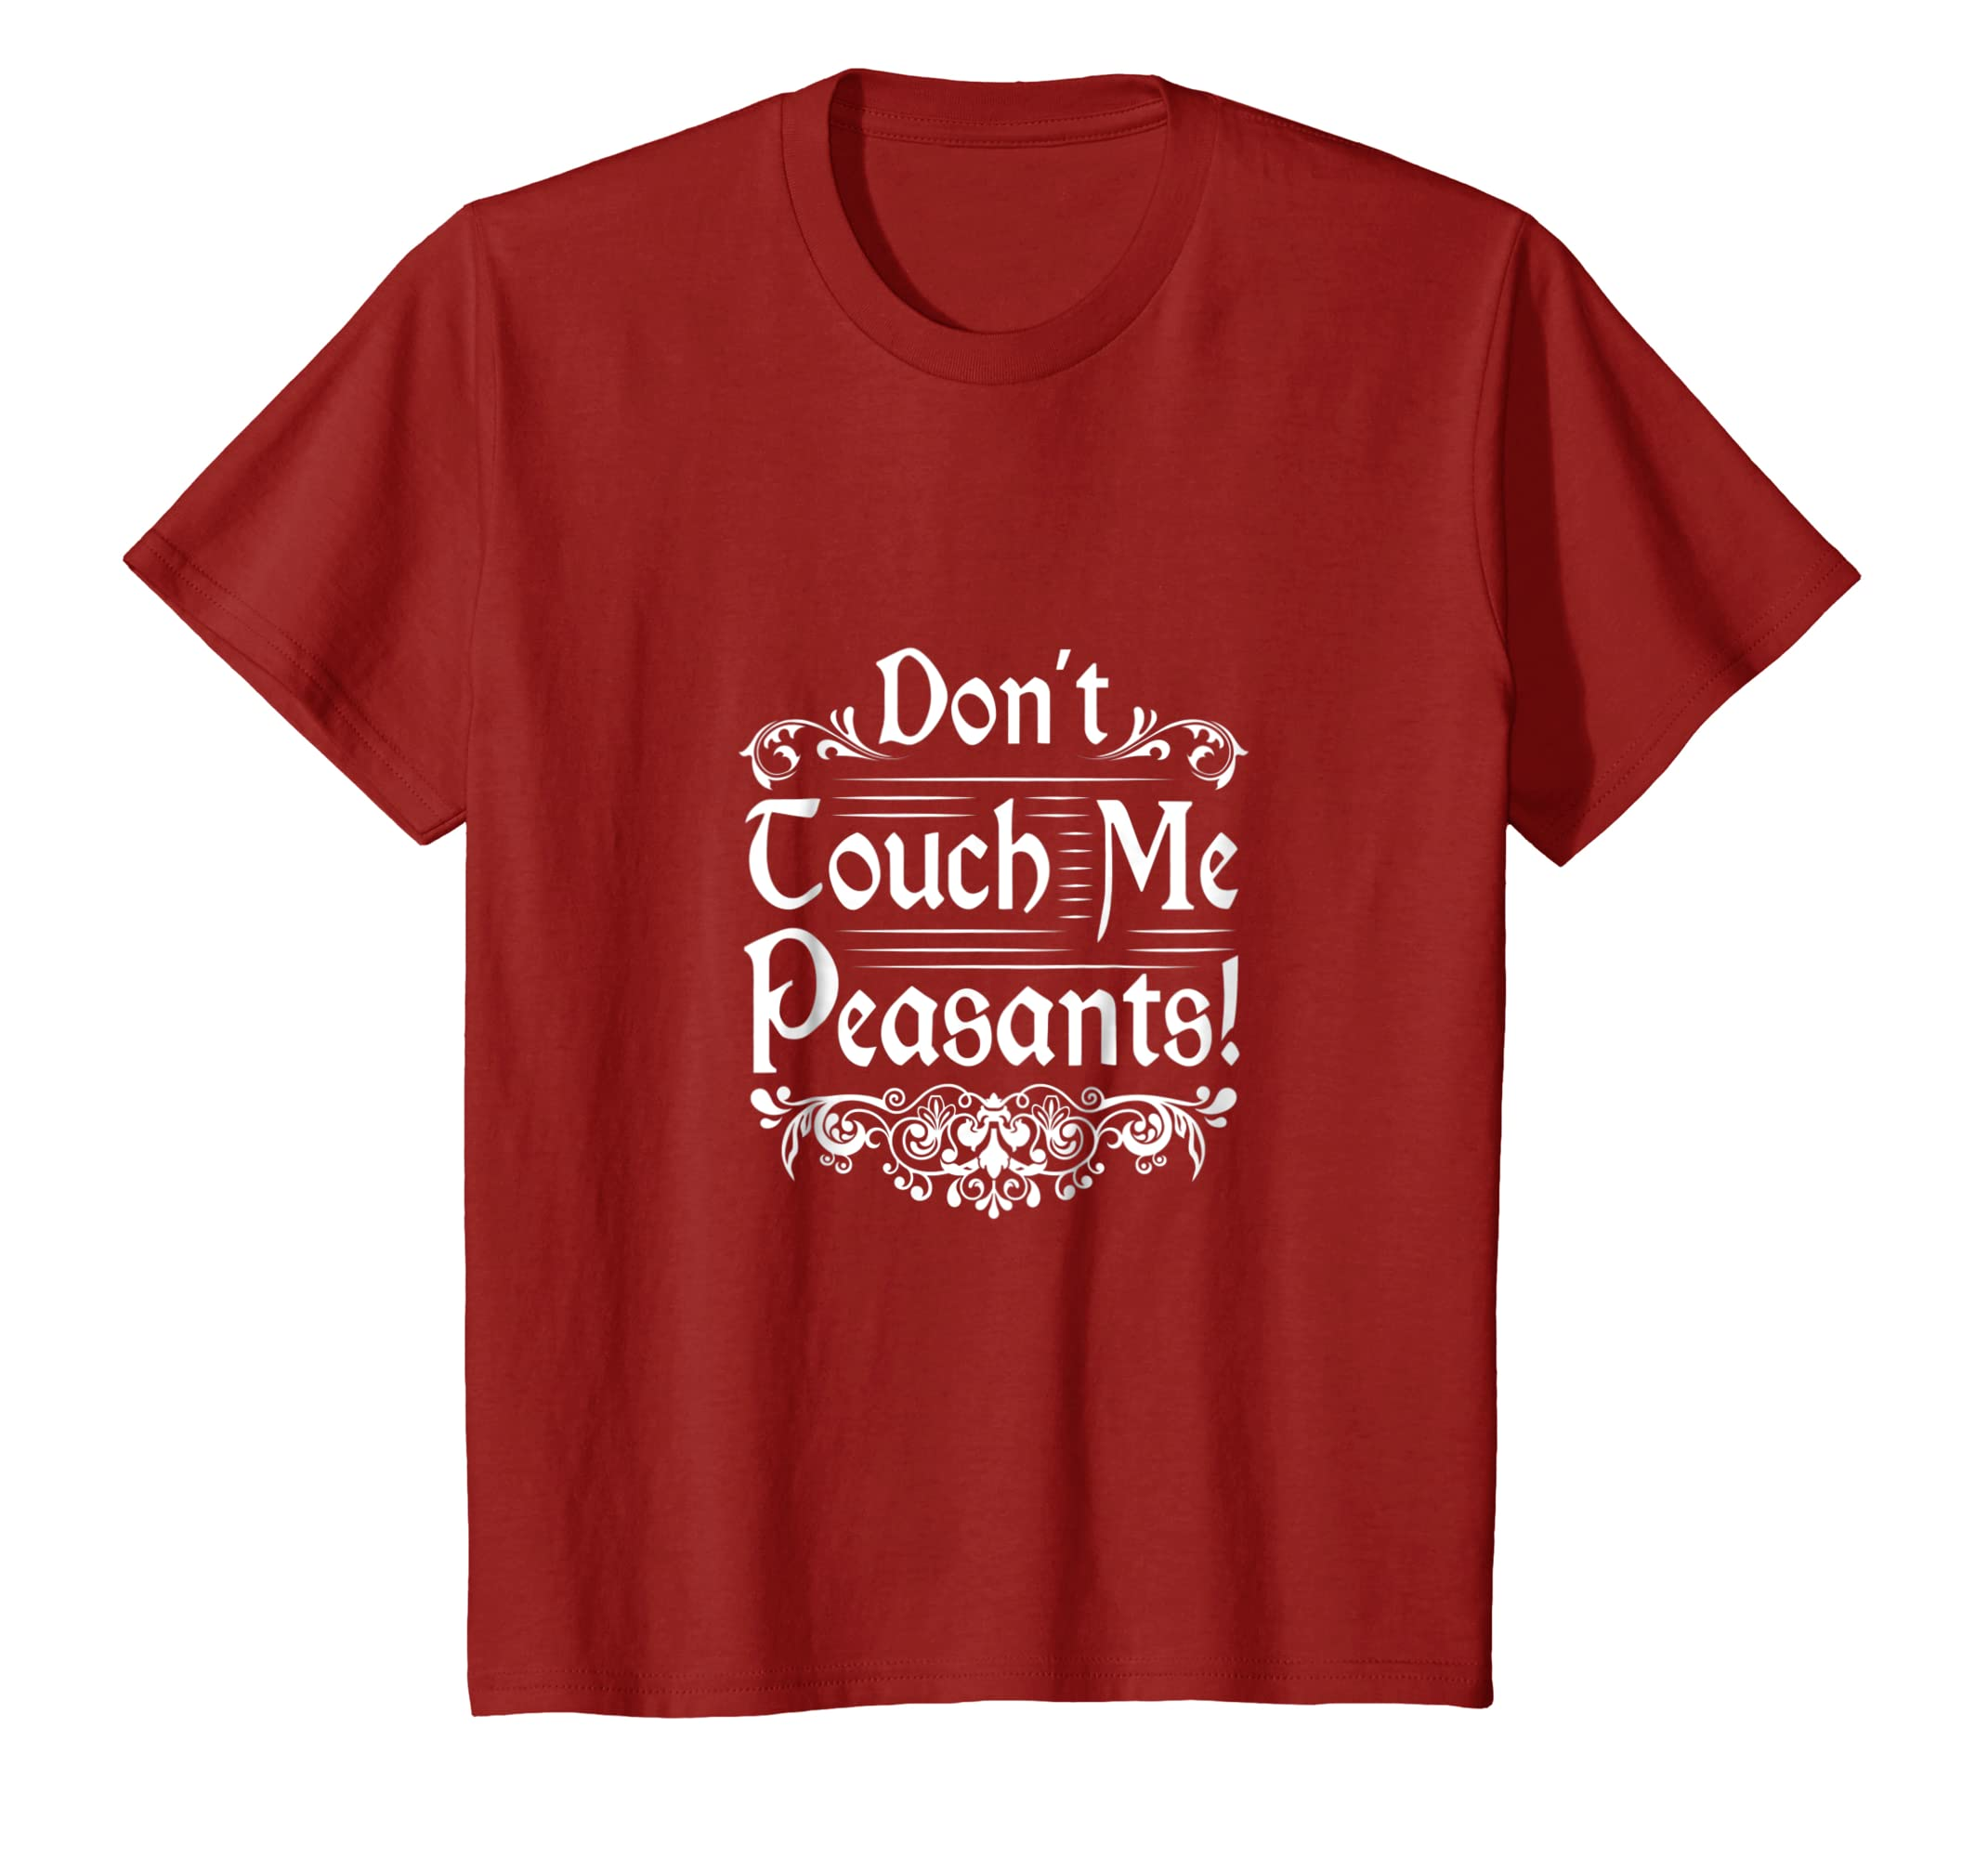 9d47da328 Amazon.com: Funny Don't Touch Me Peasants T-Shirt Medieval Knight Dragon:  Clothing